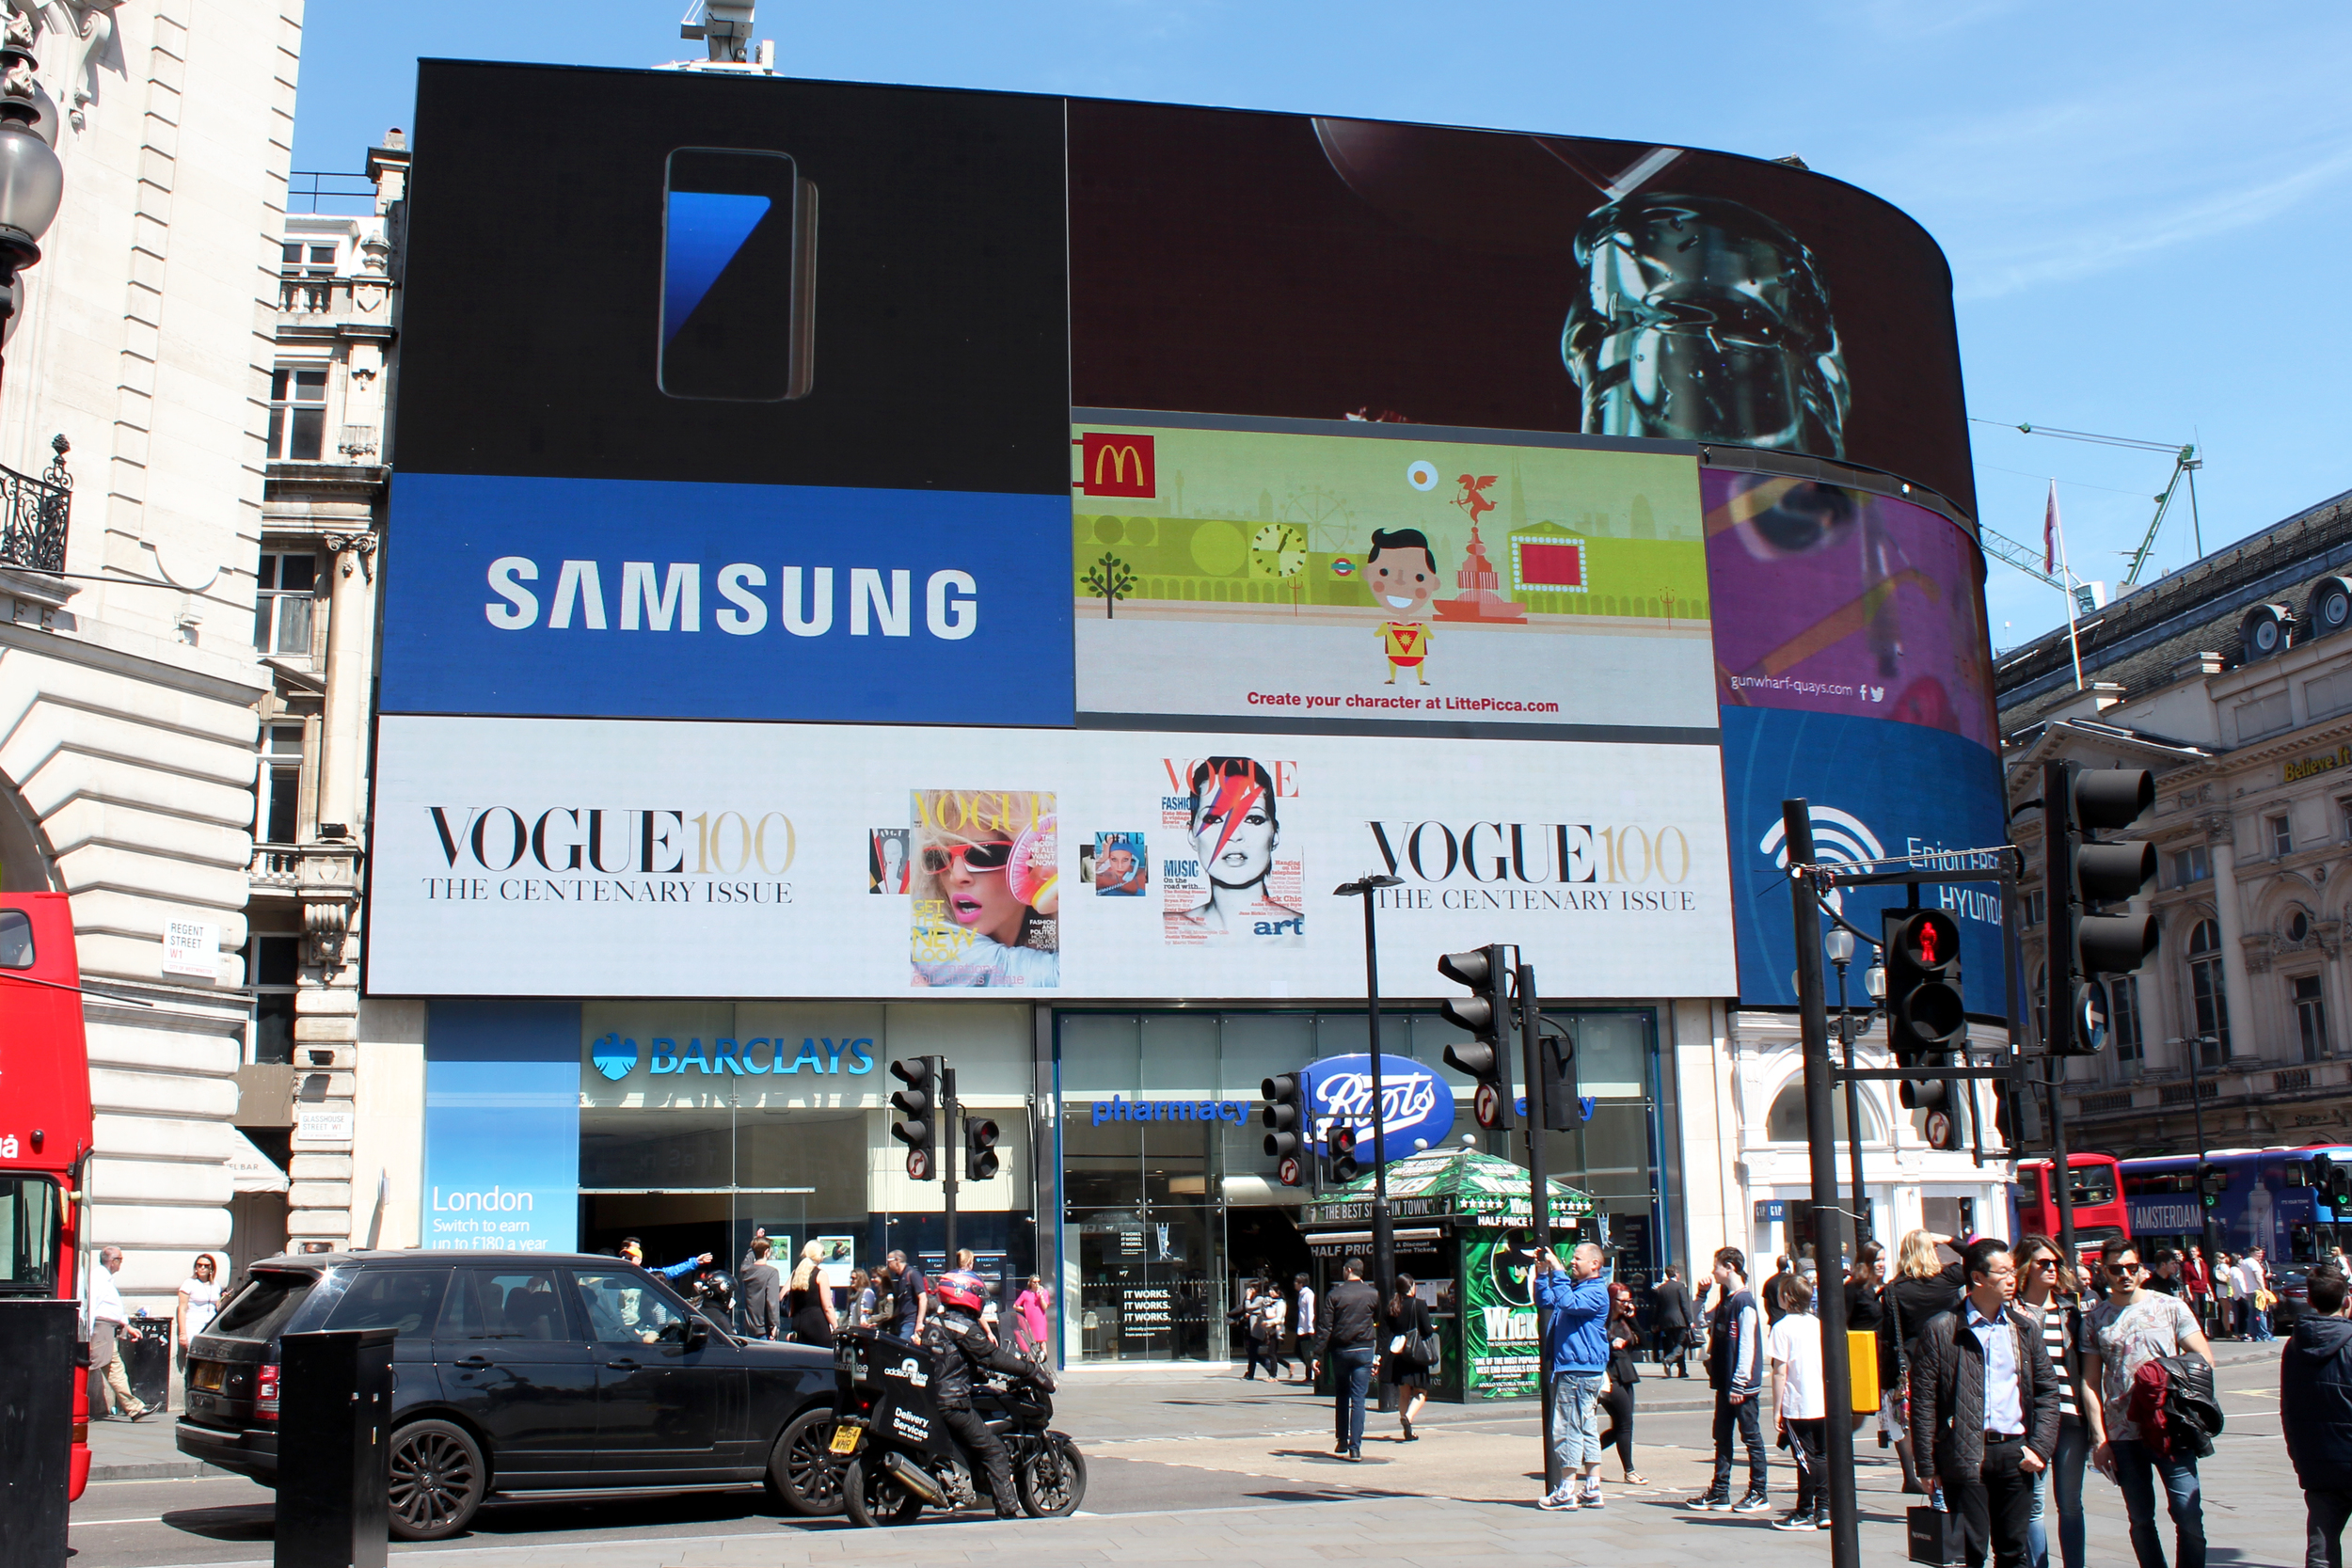 British Vogue - The Centenary Issue, Piccadilly Circus